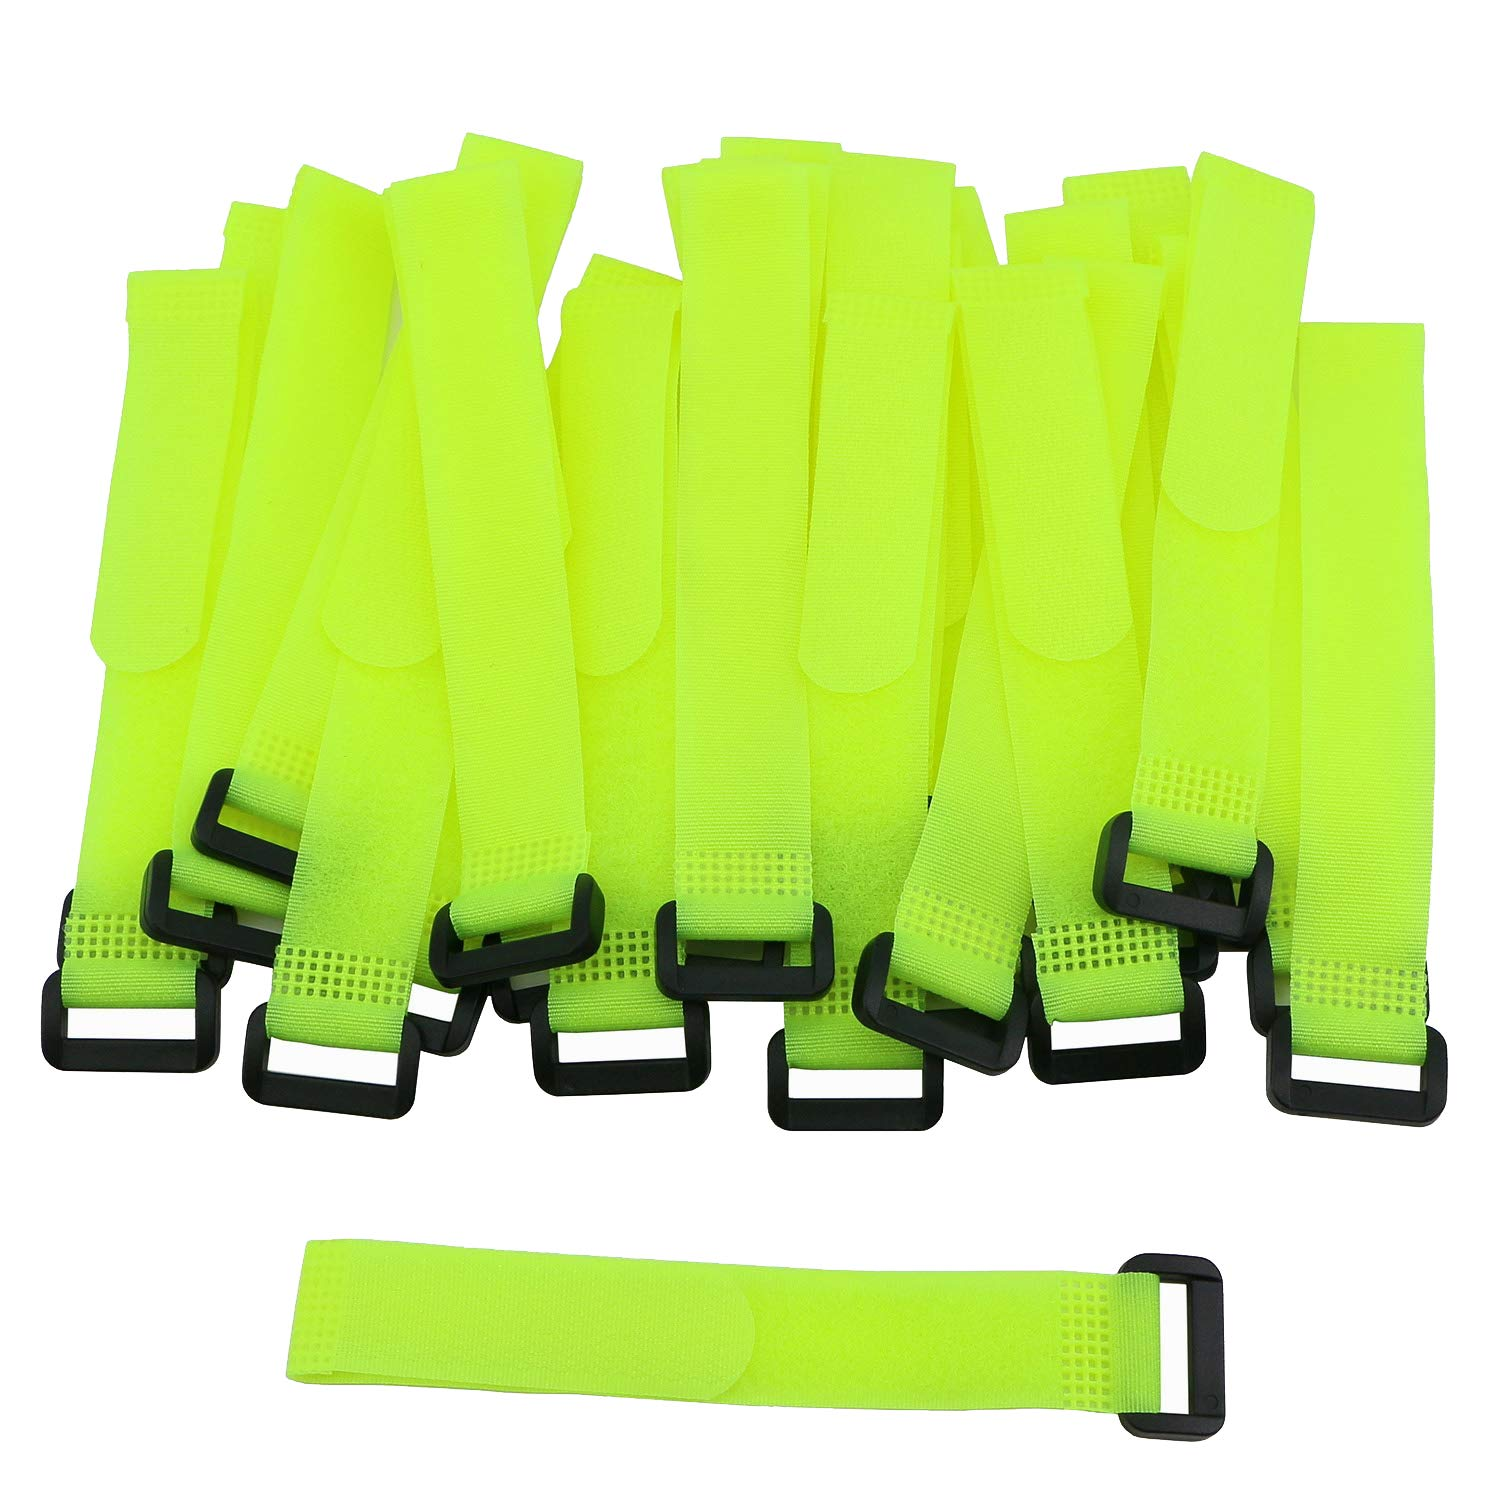 Pasow 25 Pcs 8 Inch Cable Ties with plastic buckle Reusable Wire Cord Straps Yellow